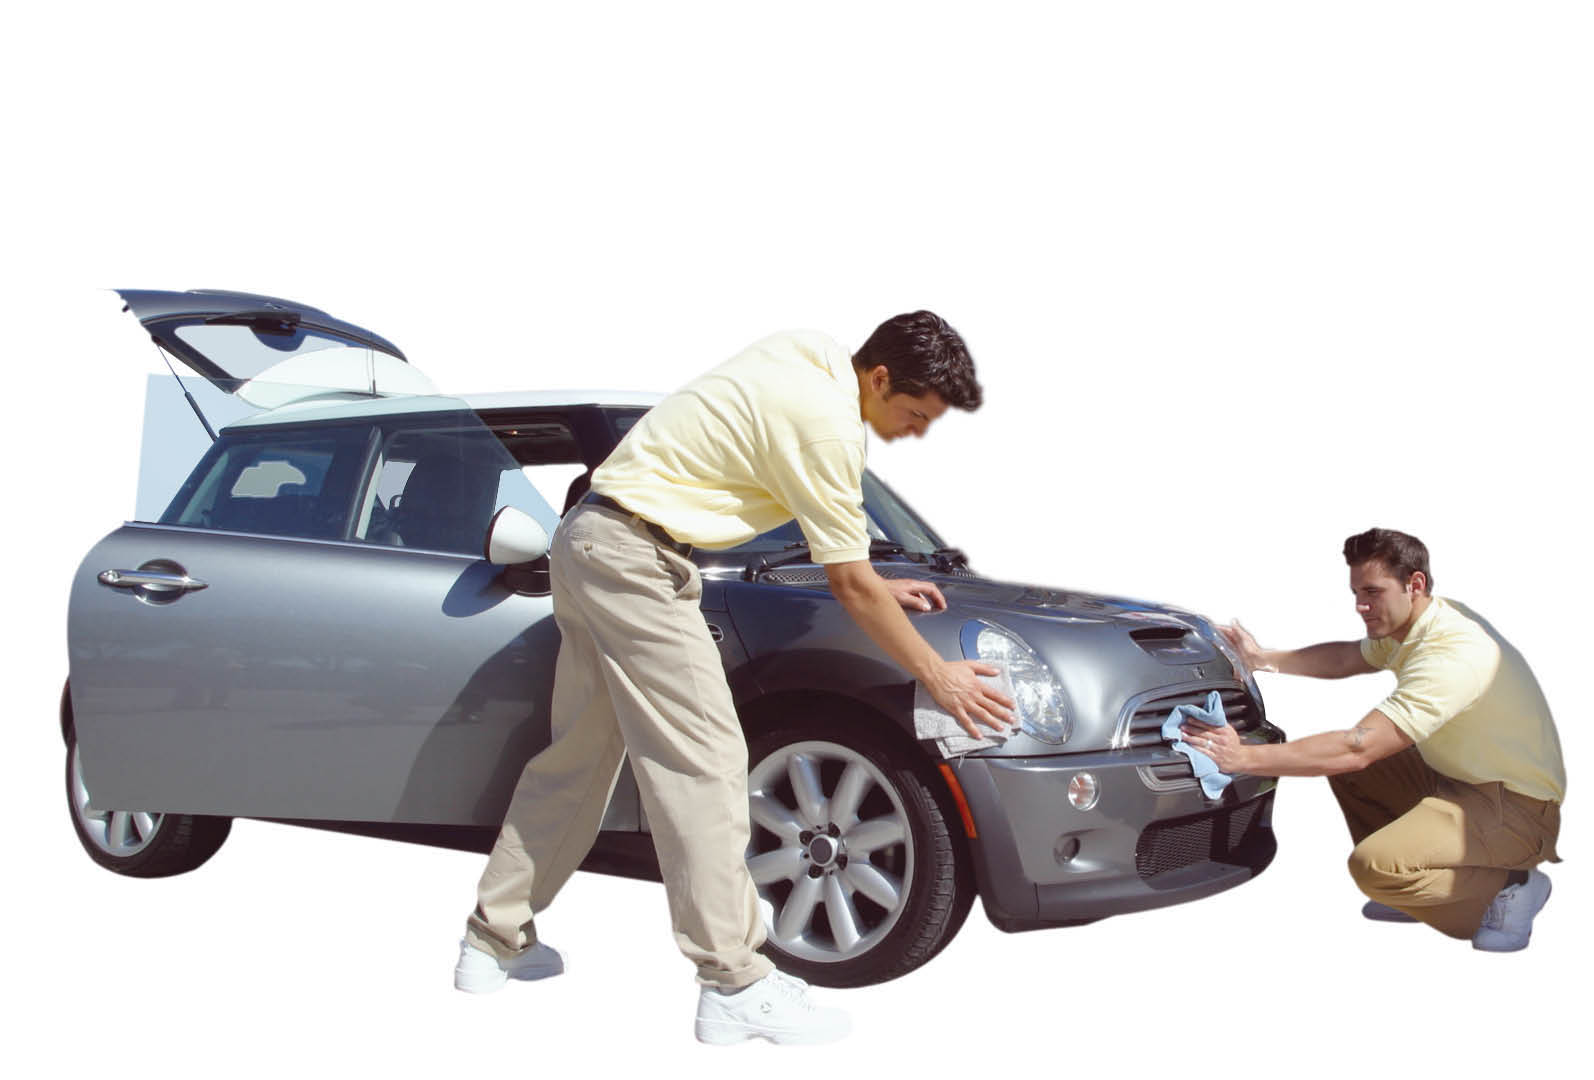 Get a thorough hand-toweled dry down of your vehicle